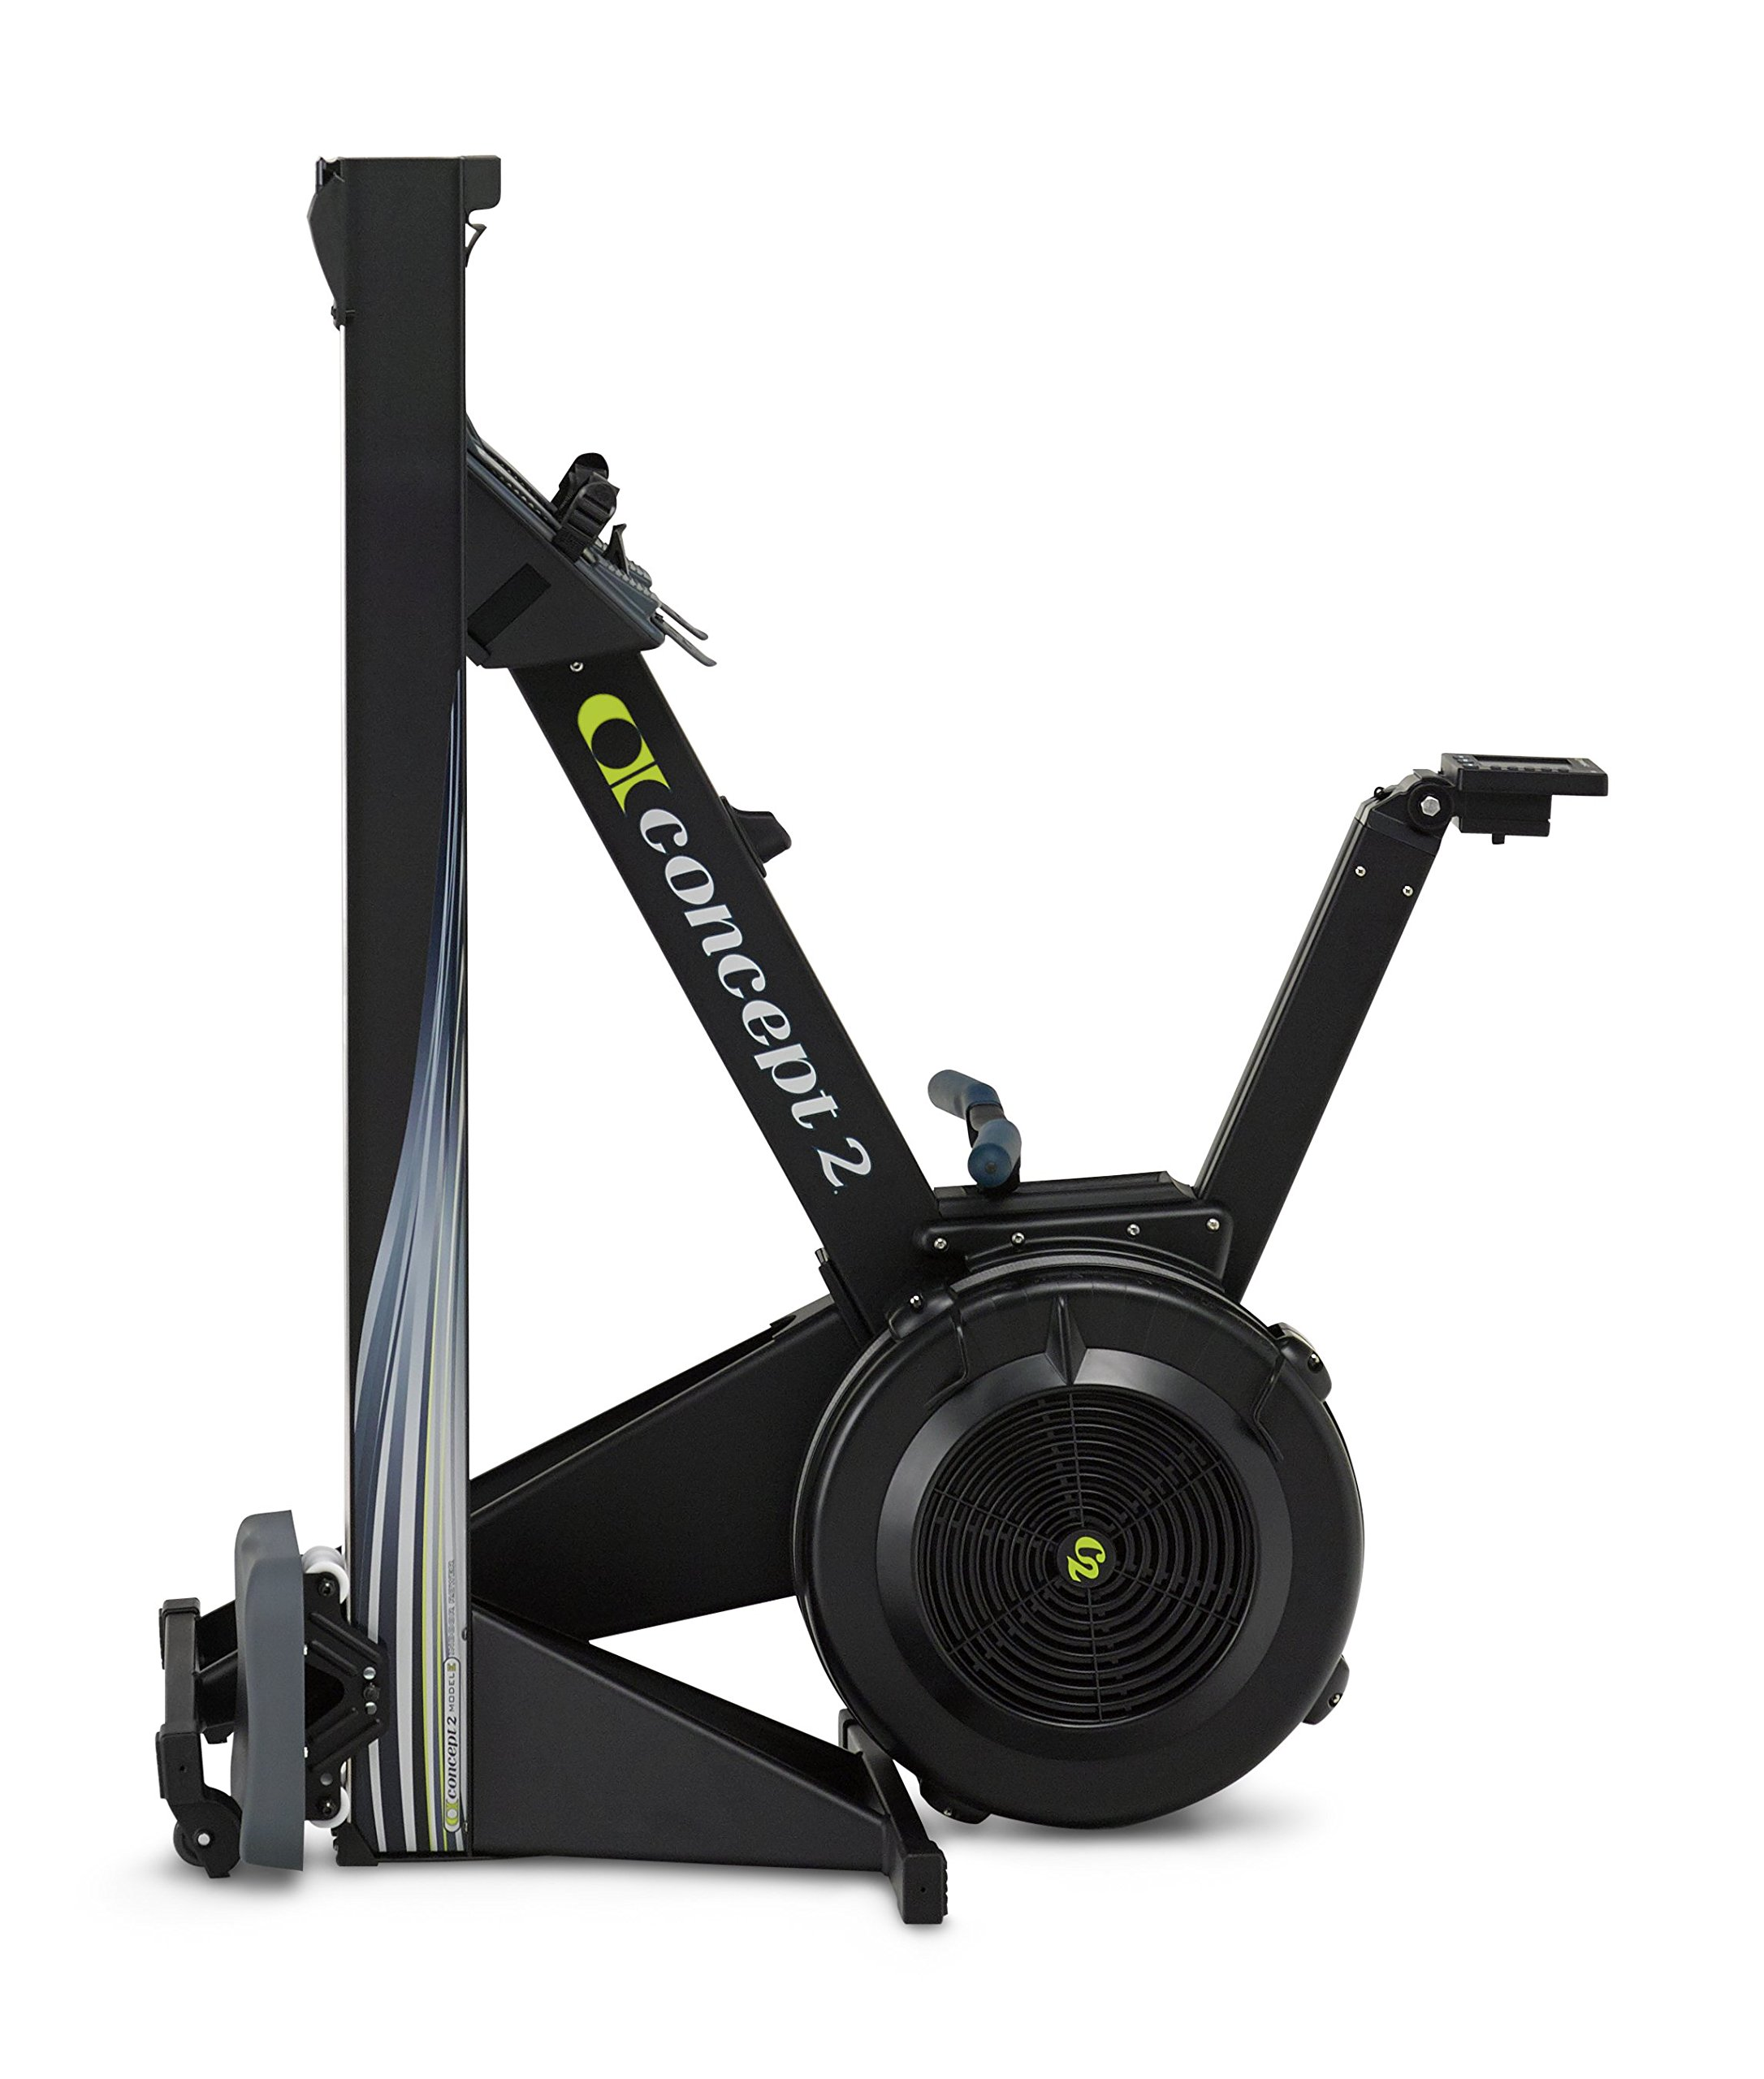 Concept2 Model E with PM5 Performance Monitor Indoor Rower Rowing Machine Black by Concept2 (Image #2)